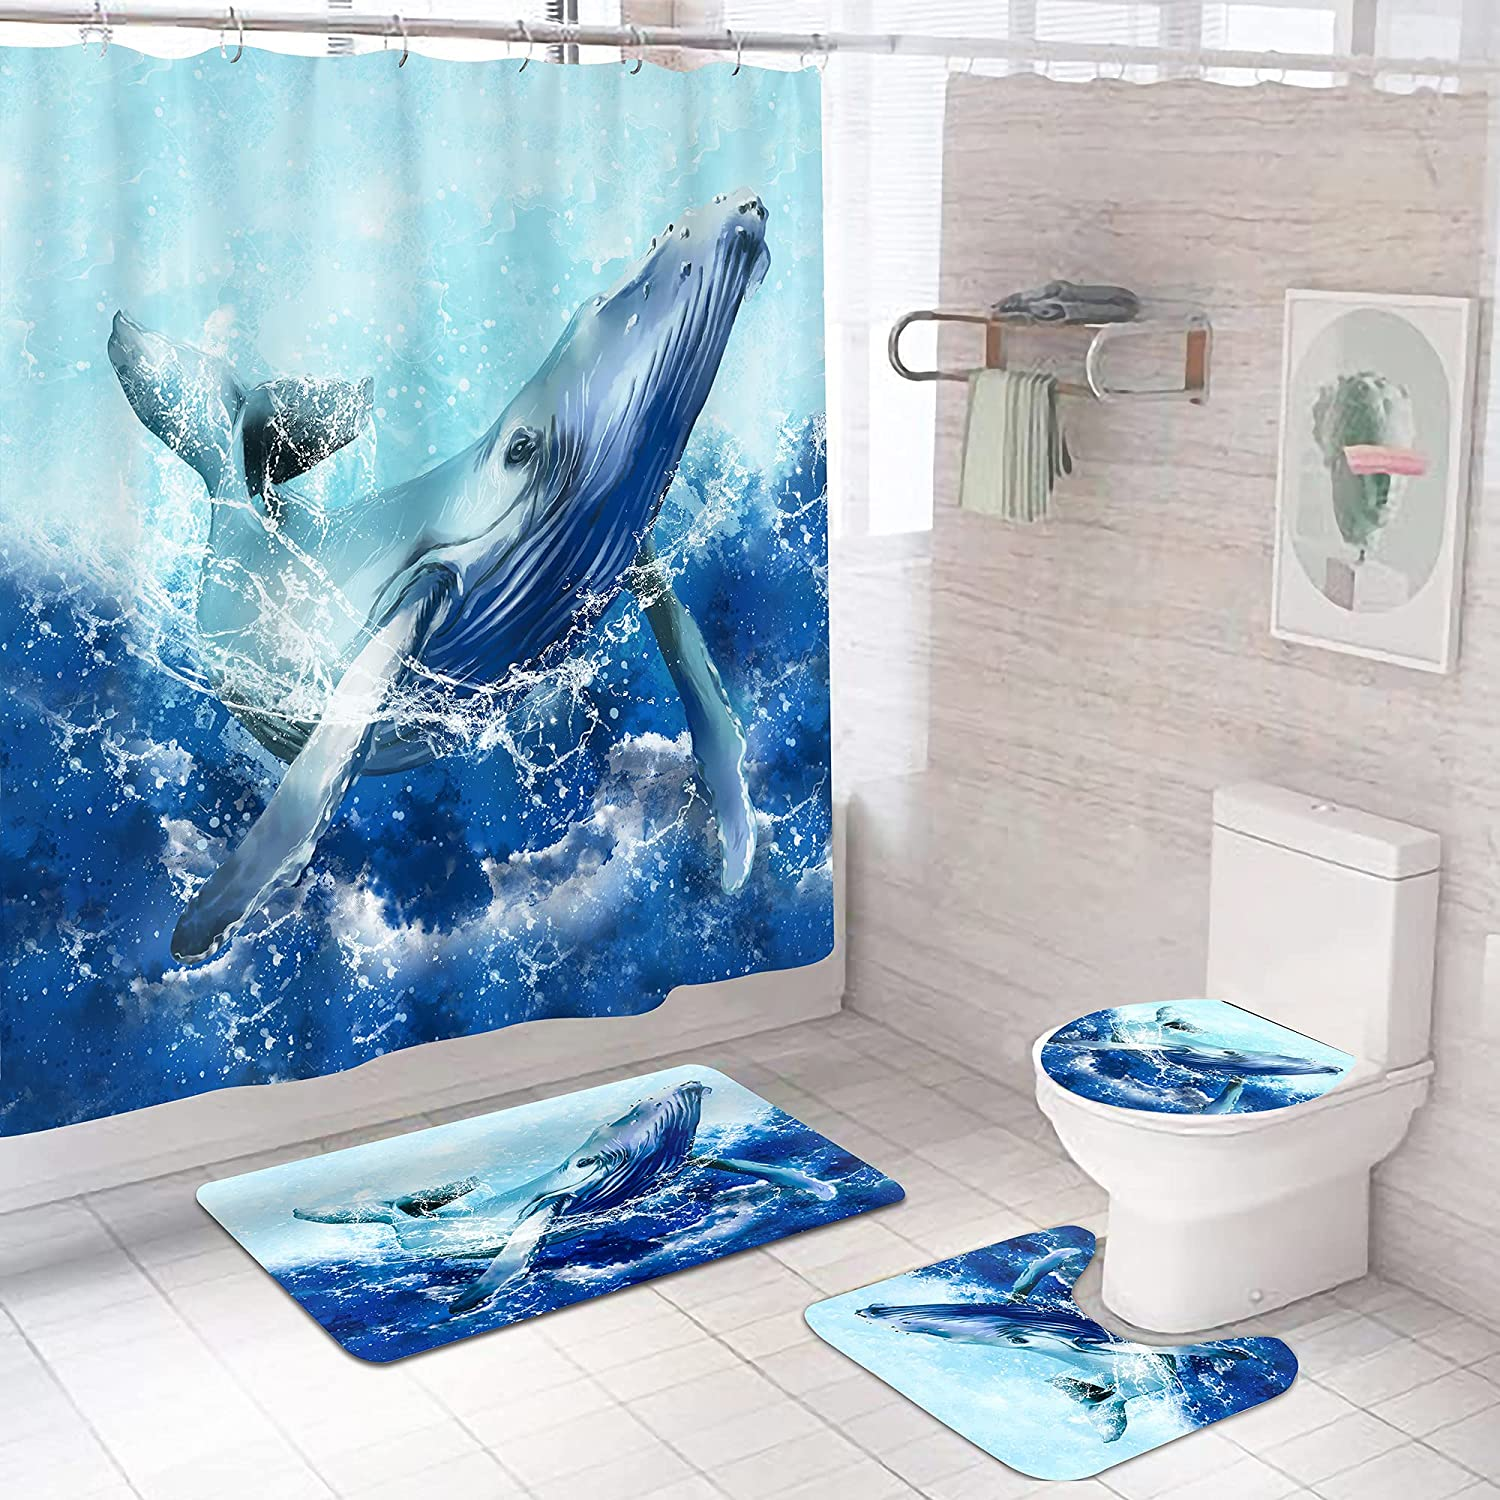 4 Pcs Blue Whale Bathroom Sets and Shower Mail order Rugs with Curtain San Jose Mall